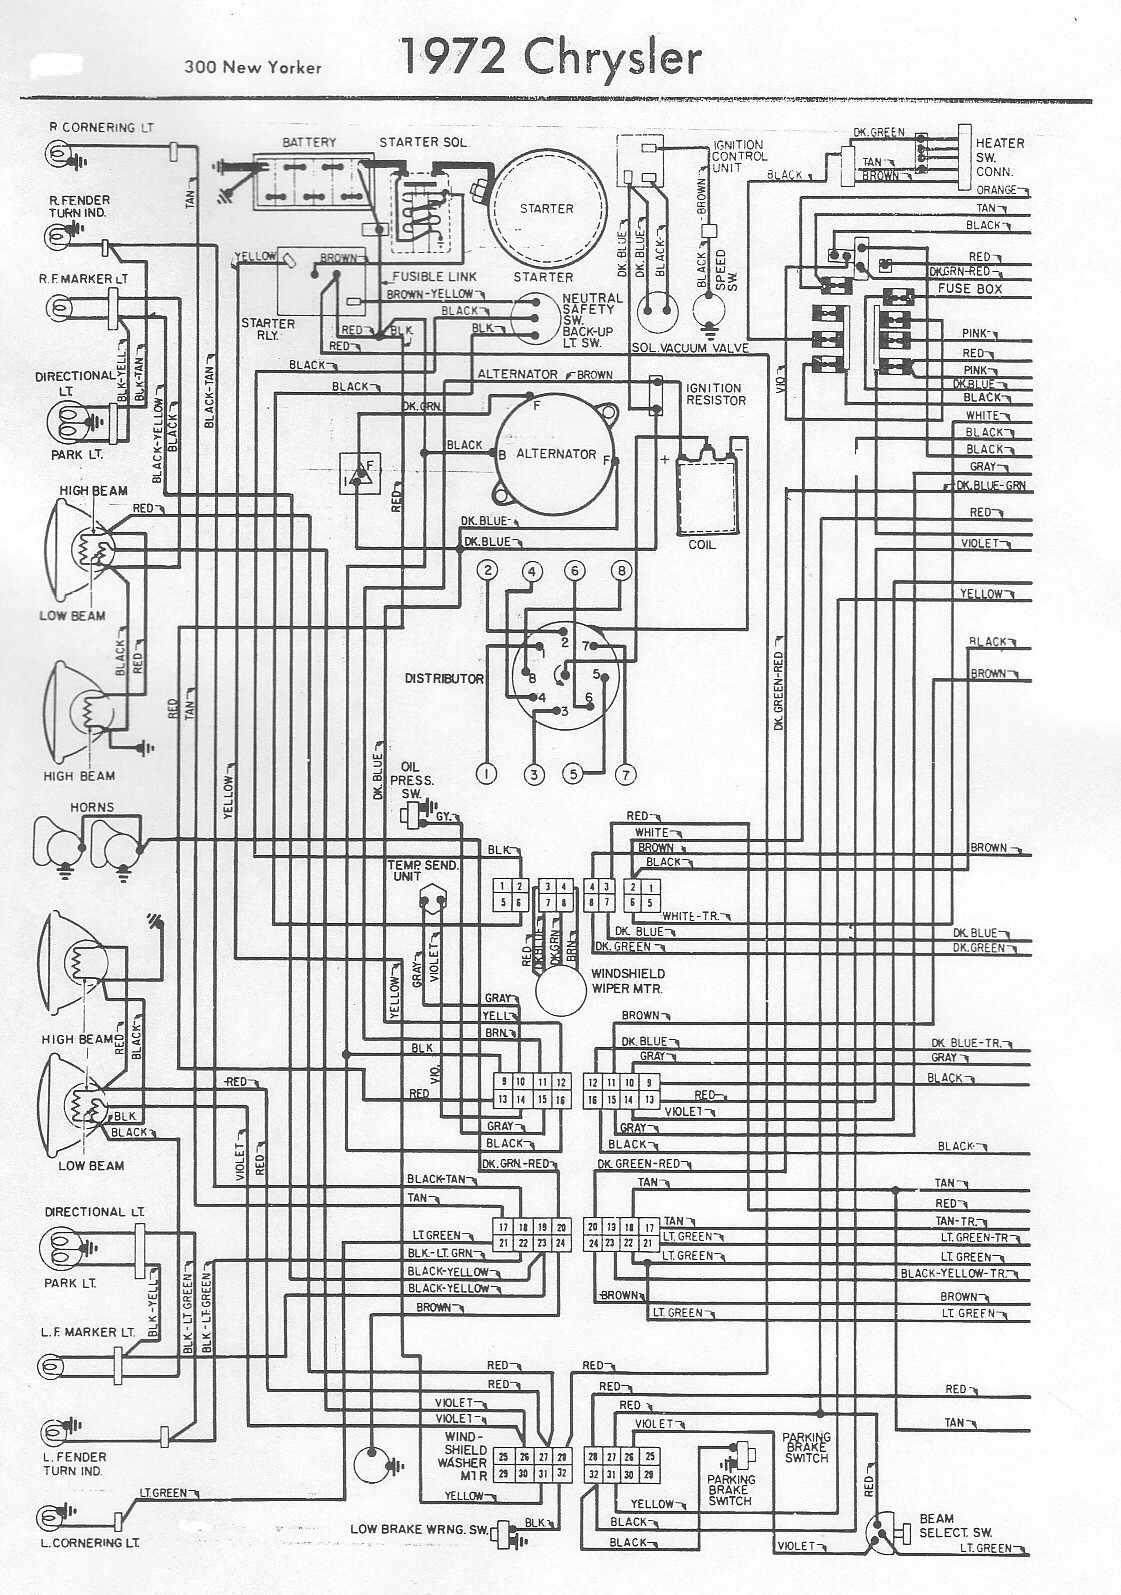 Ignition Switch Wiring Diagram For Chrysler 300 C - Wiring Diagram on mopar junk yards, mopar crate engines, mopar pin up, mopar graveyard, mopar no car, mopar barn finds, mopar big block, mopar 318 engine, mopar hei wiring, mopar start system diagram, mopar street rods, dodge truck electrical diagrams, mopar super bee, mopar super stock, mopar starter relay, mopar resto mods, mopar desktop theme, smart car diagrams, mopar hemi engine, chrysler fuel diagrams,